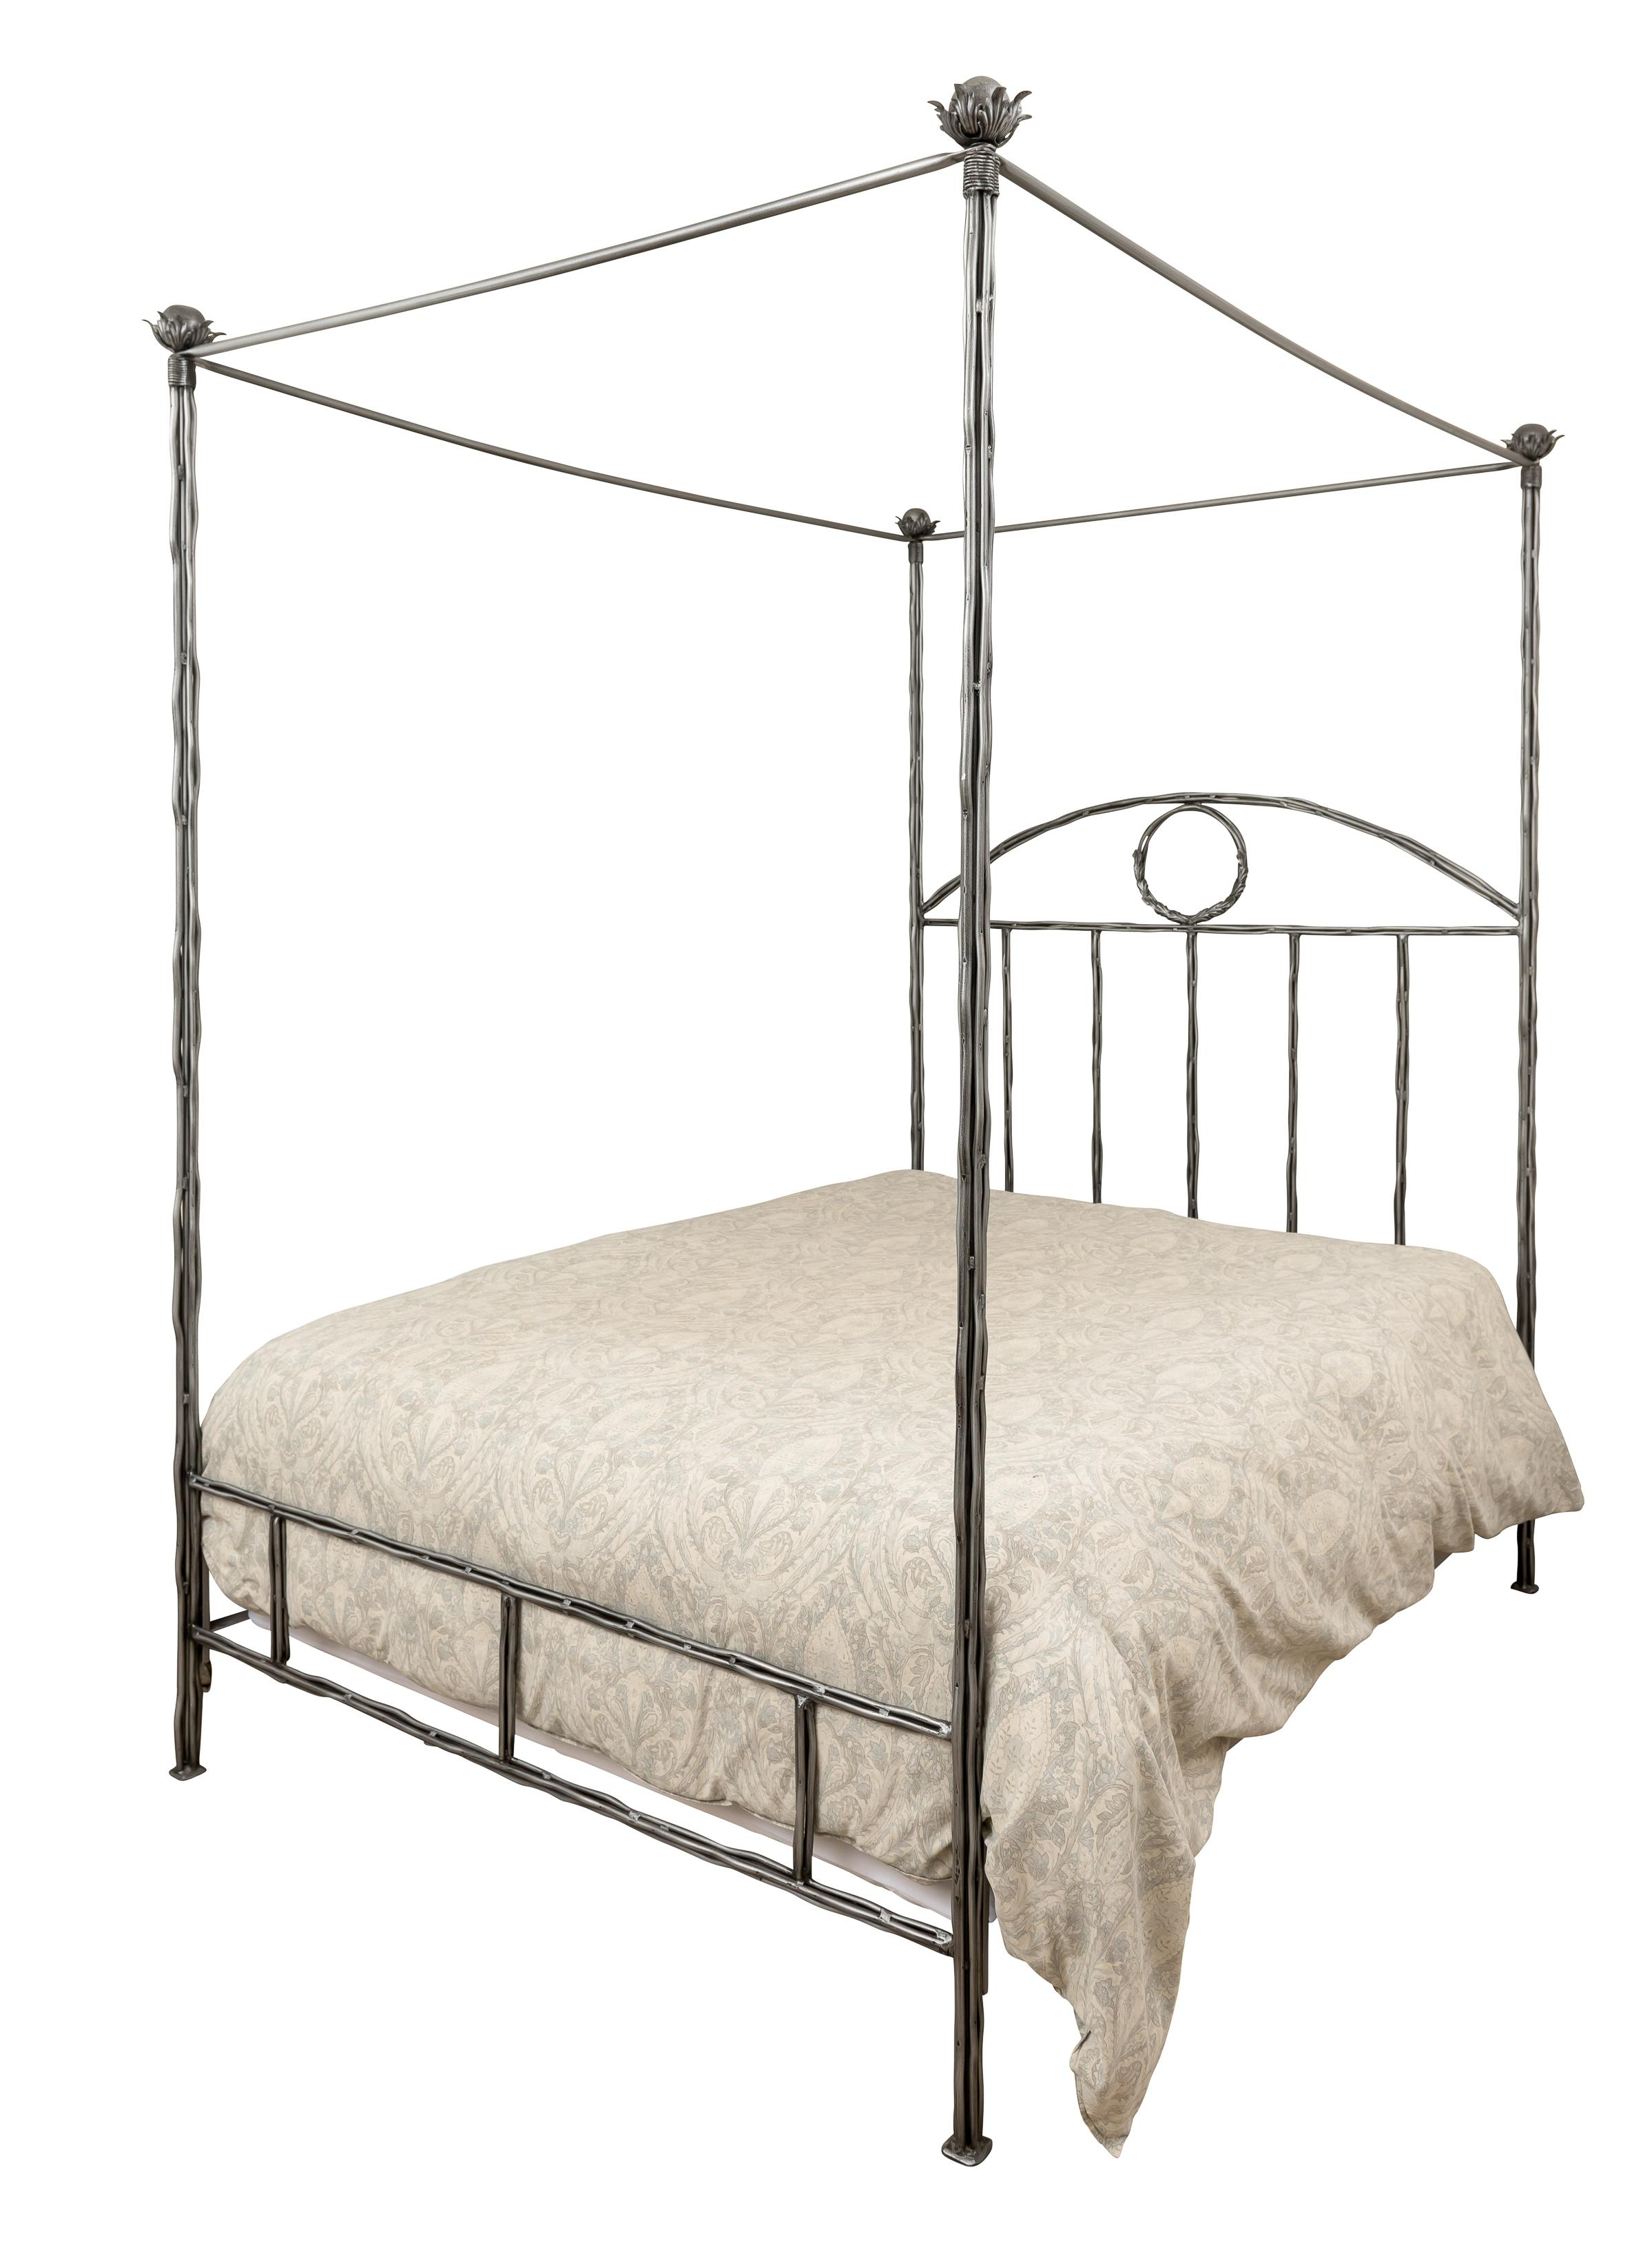 Romantic Framed Metal Canopy Queen Bed Chairish: short canopy bed